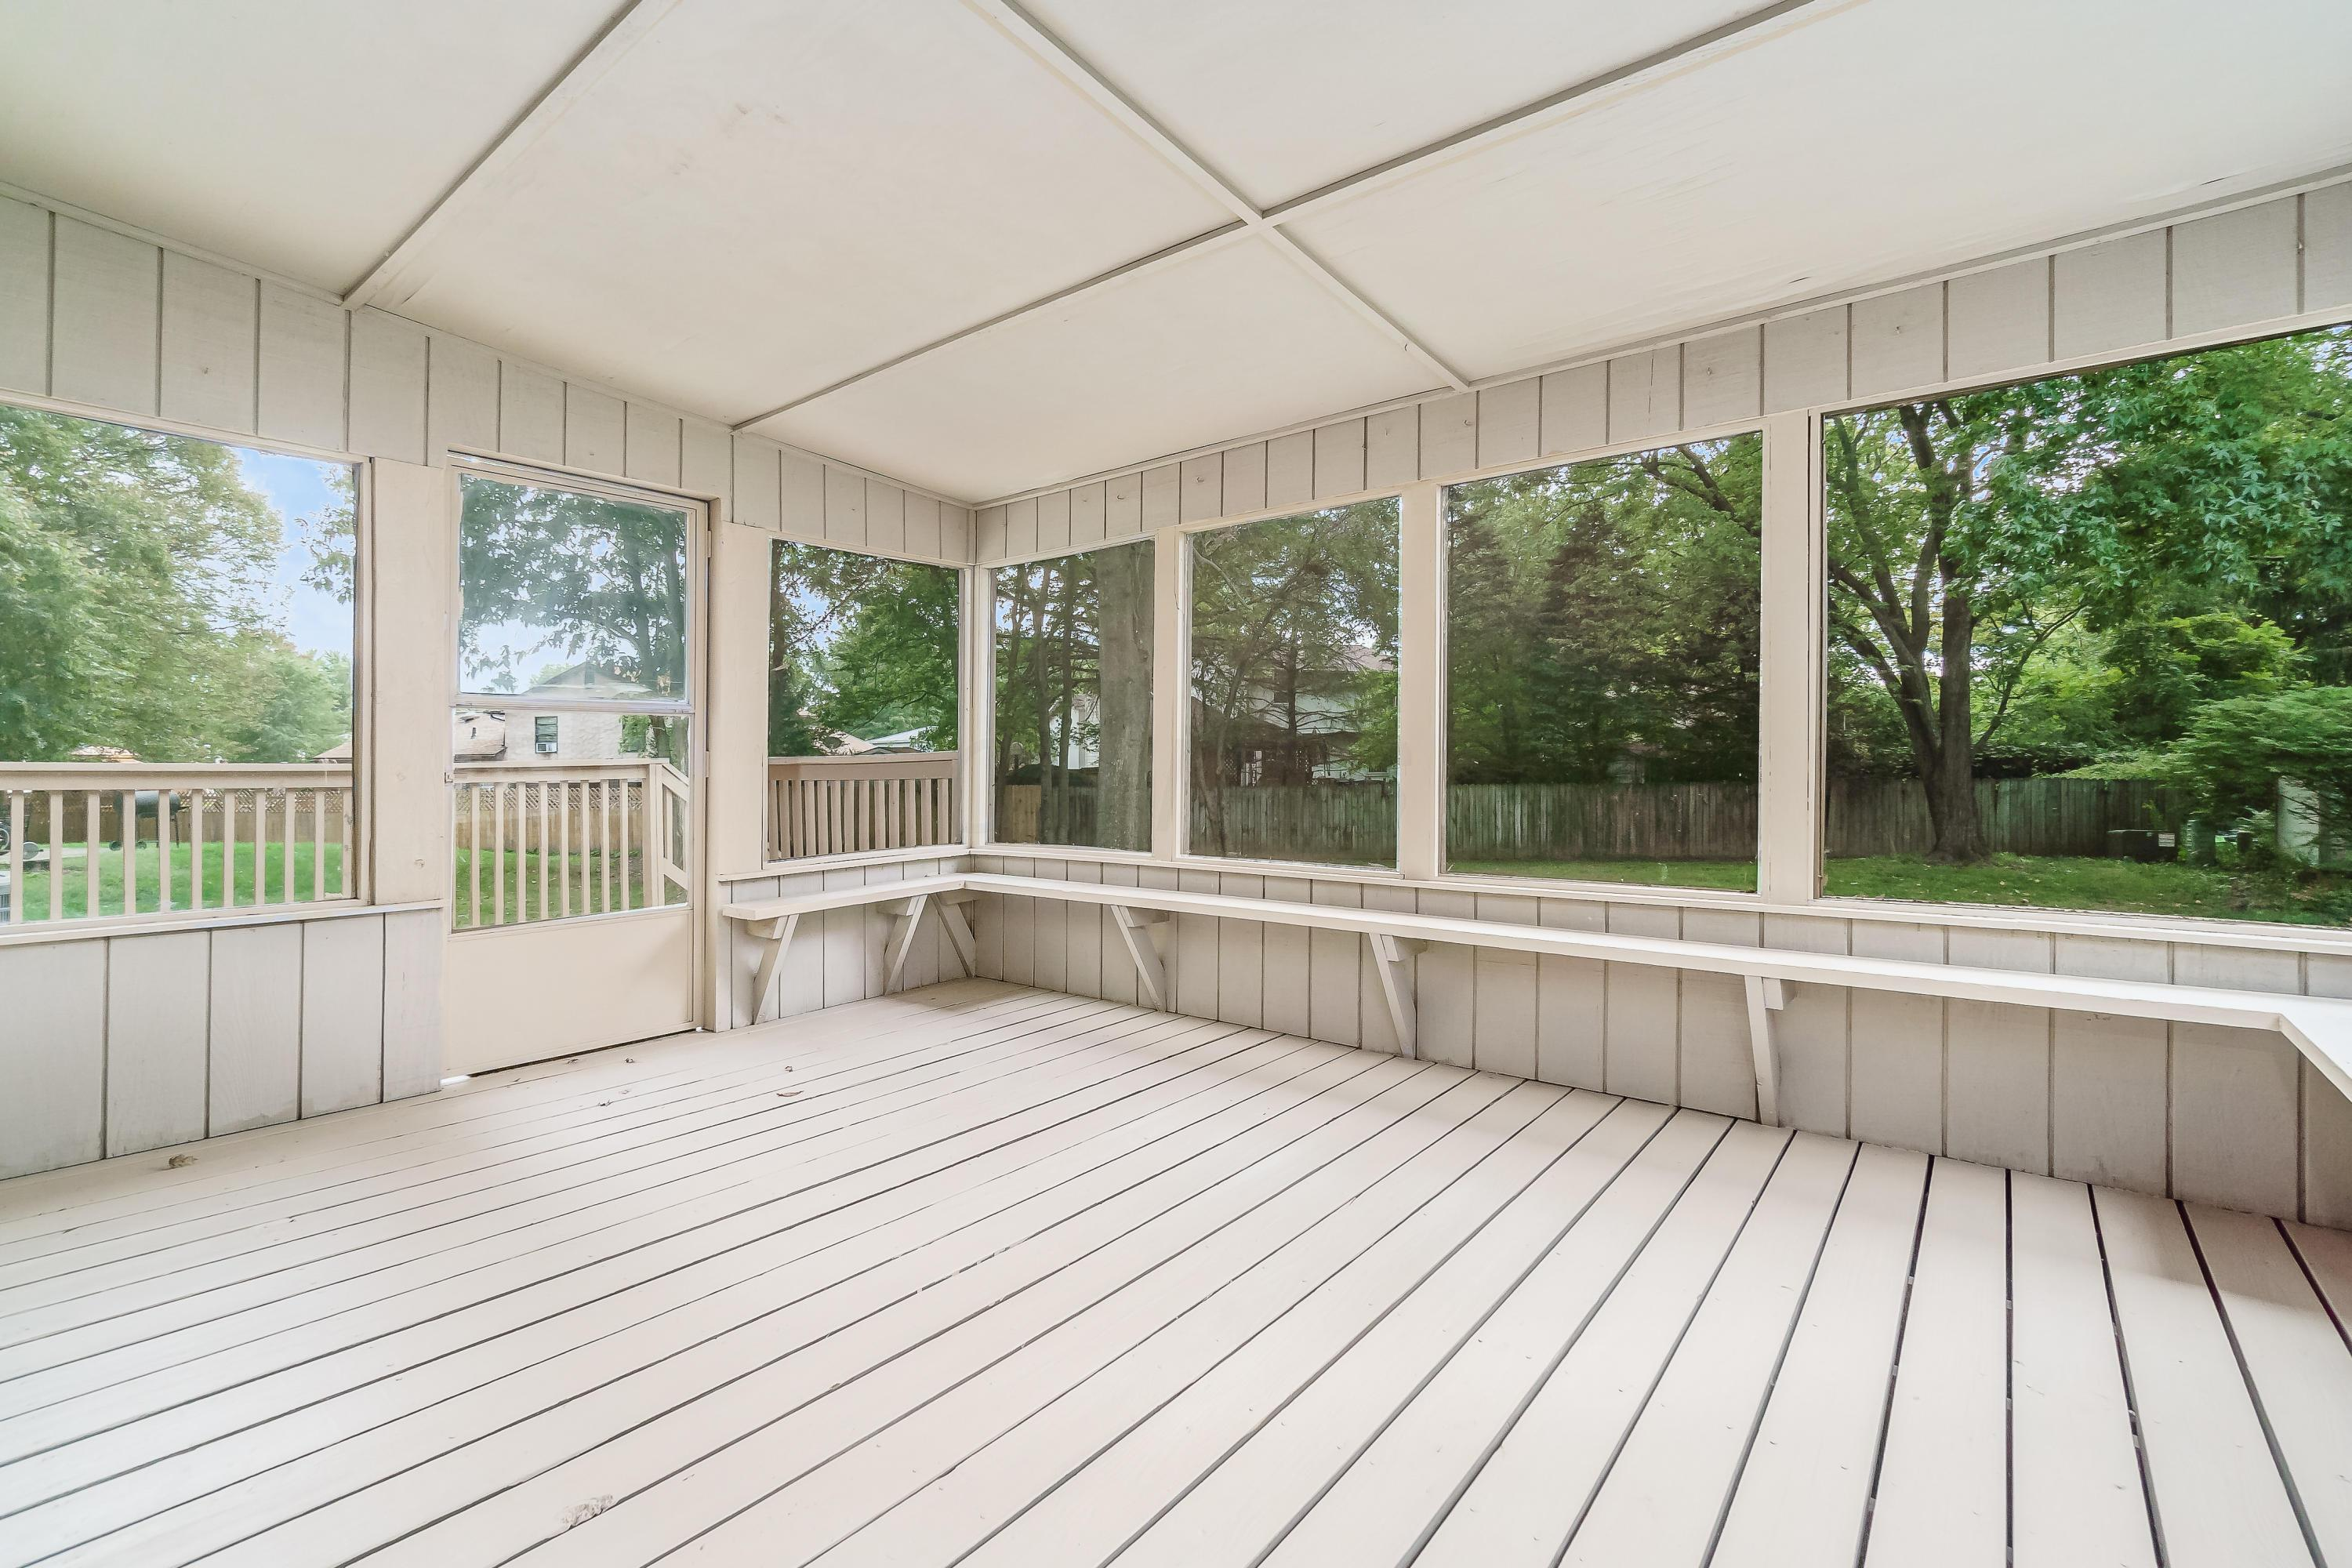 3507 Fence Row Court, Canal Winchester, Ohio 43110, 4 Bedrooms Bedrooms, ,3 BathroomsBathrooms,Residential,For Sale,Fence Row,220032227